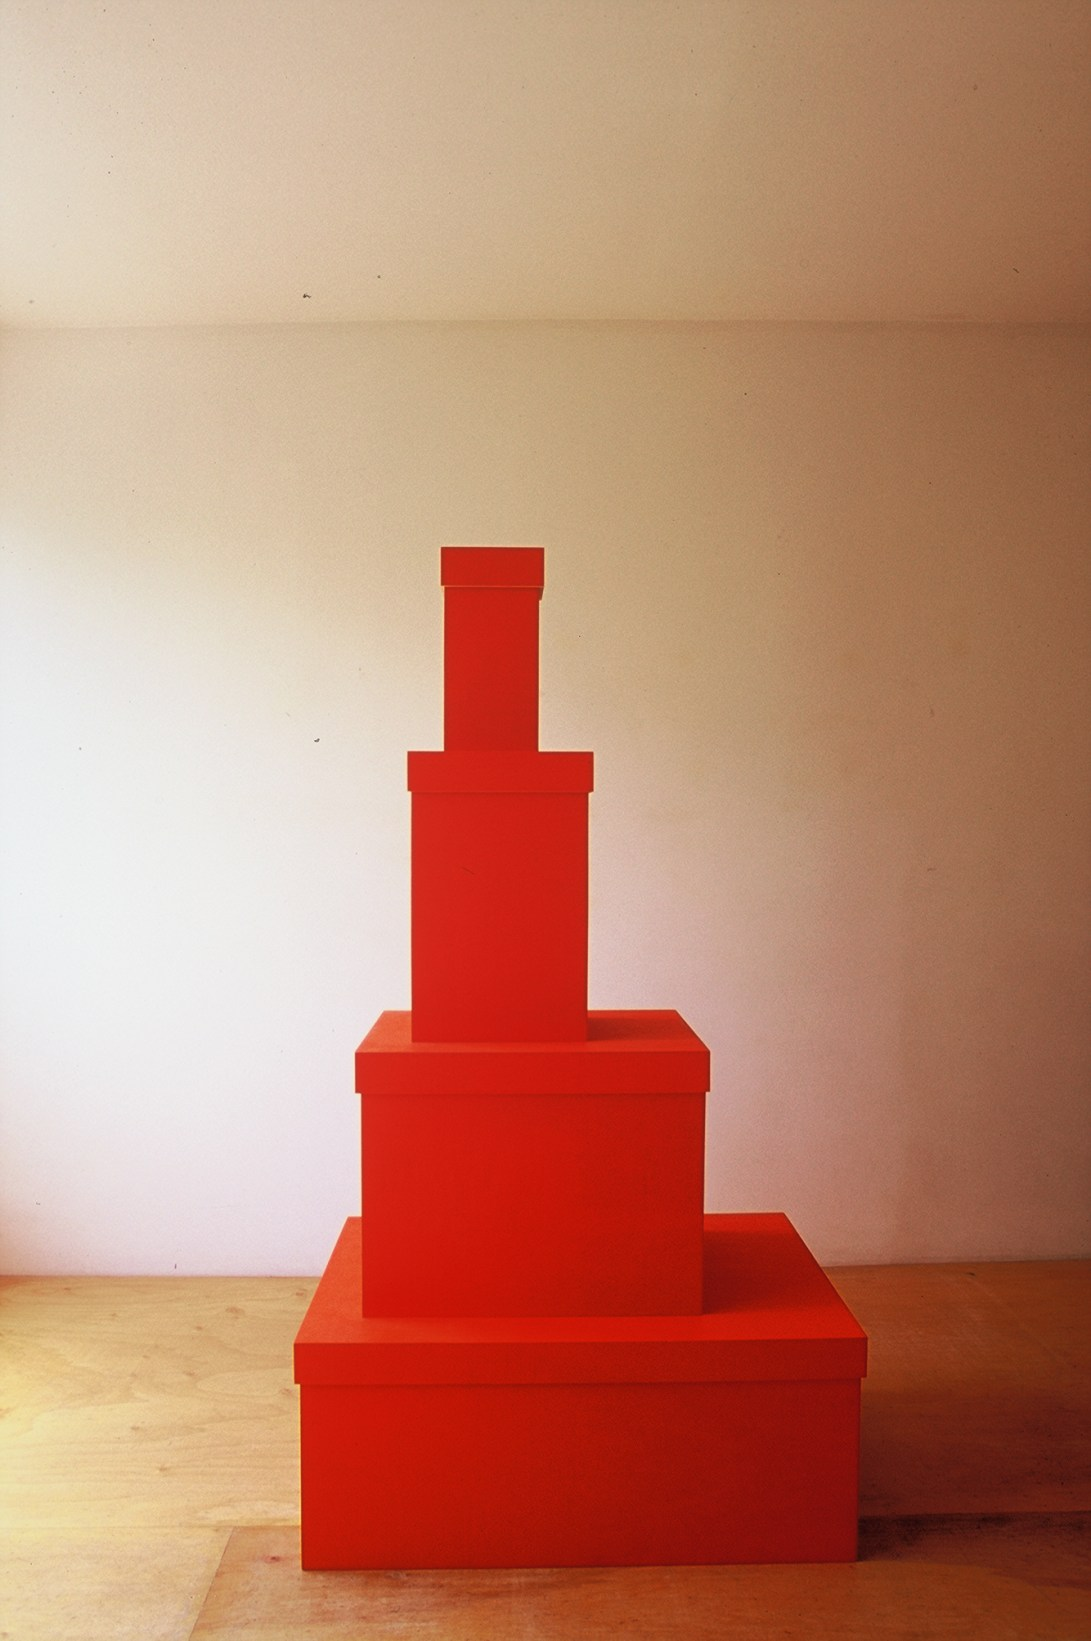 Sculpture 3, Untitled red boxes